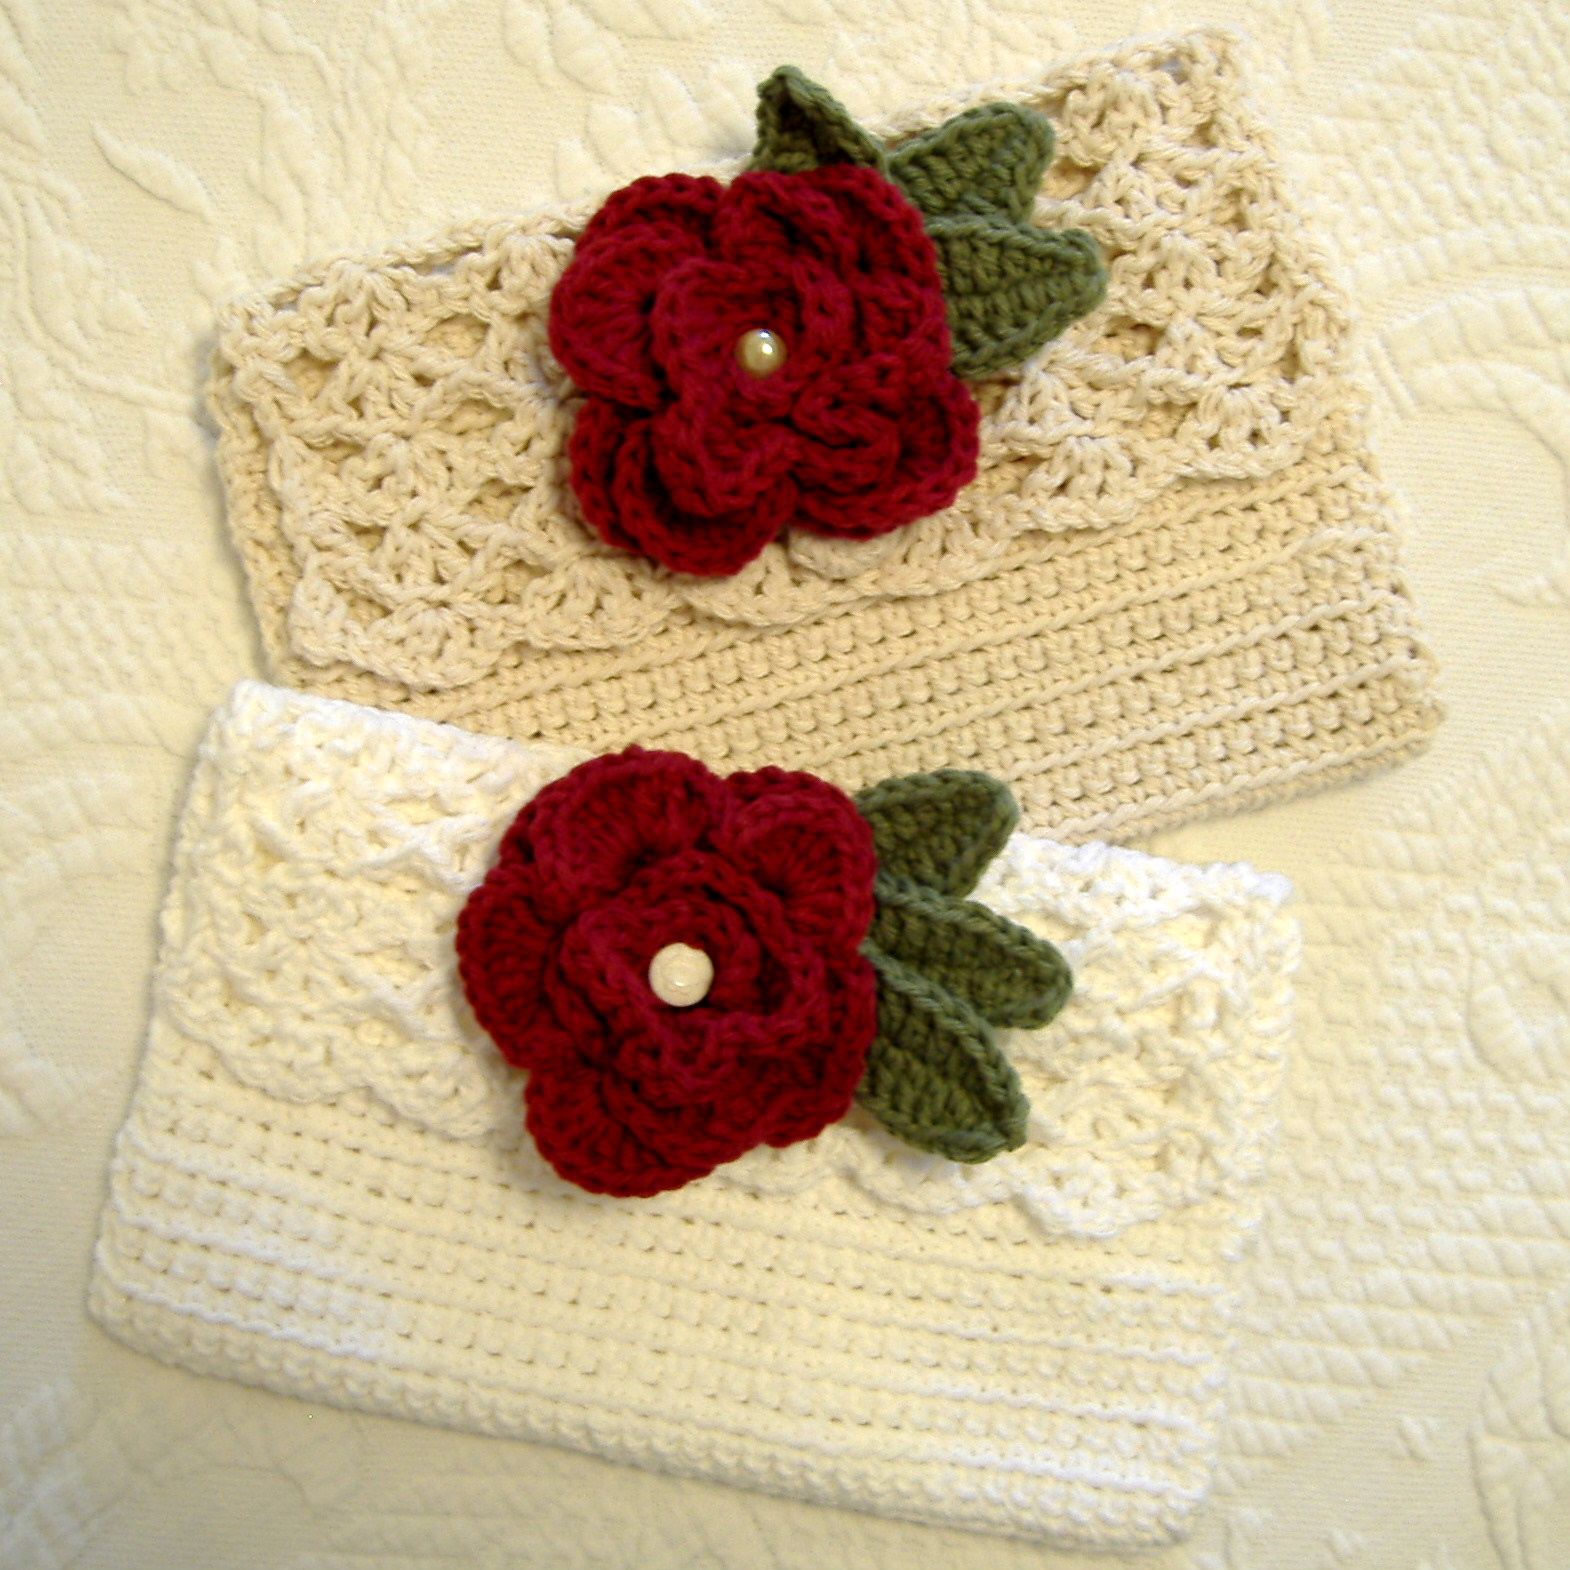 Crochet Purse Patterns Free : CROCHET PATTERNS PURSES FREE PATTERNS